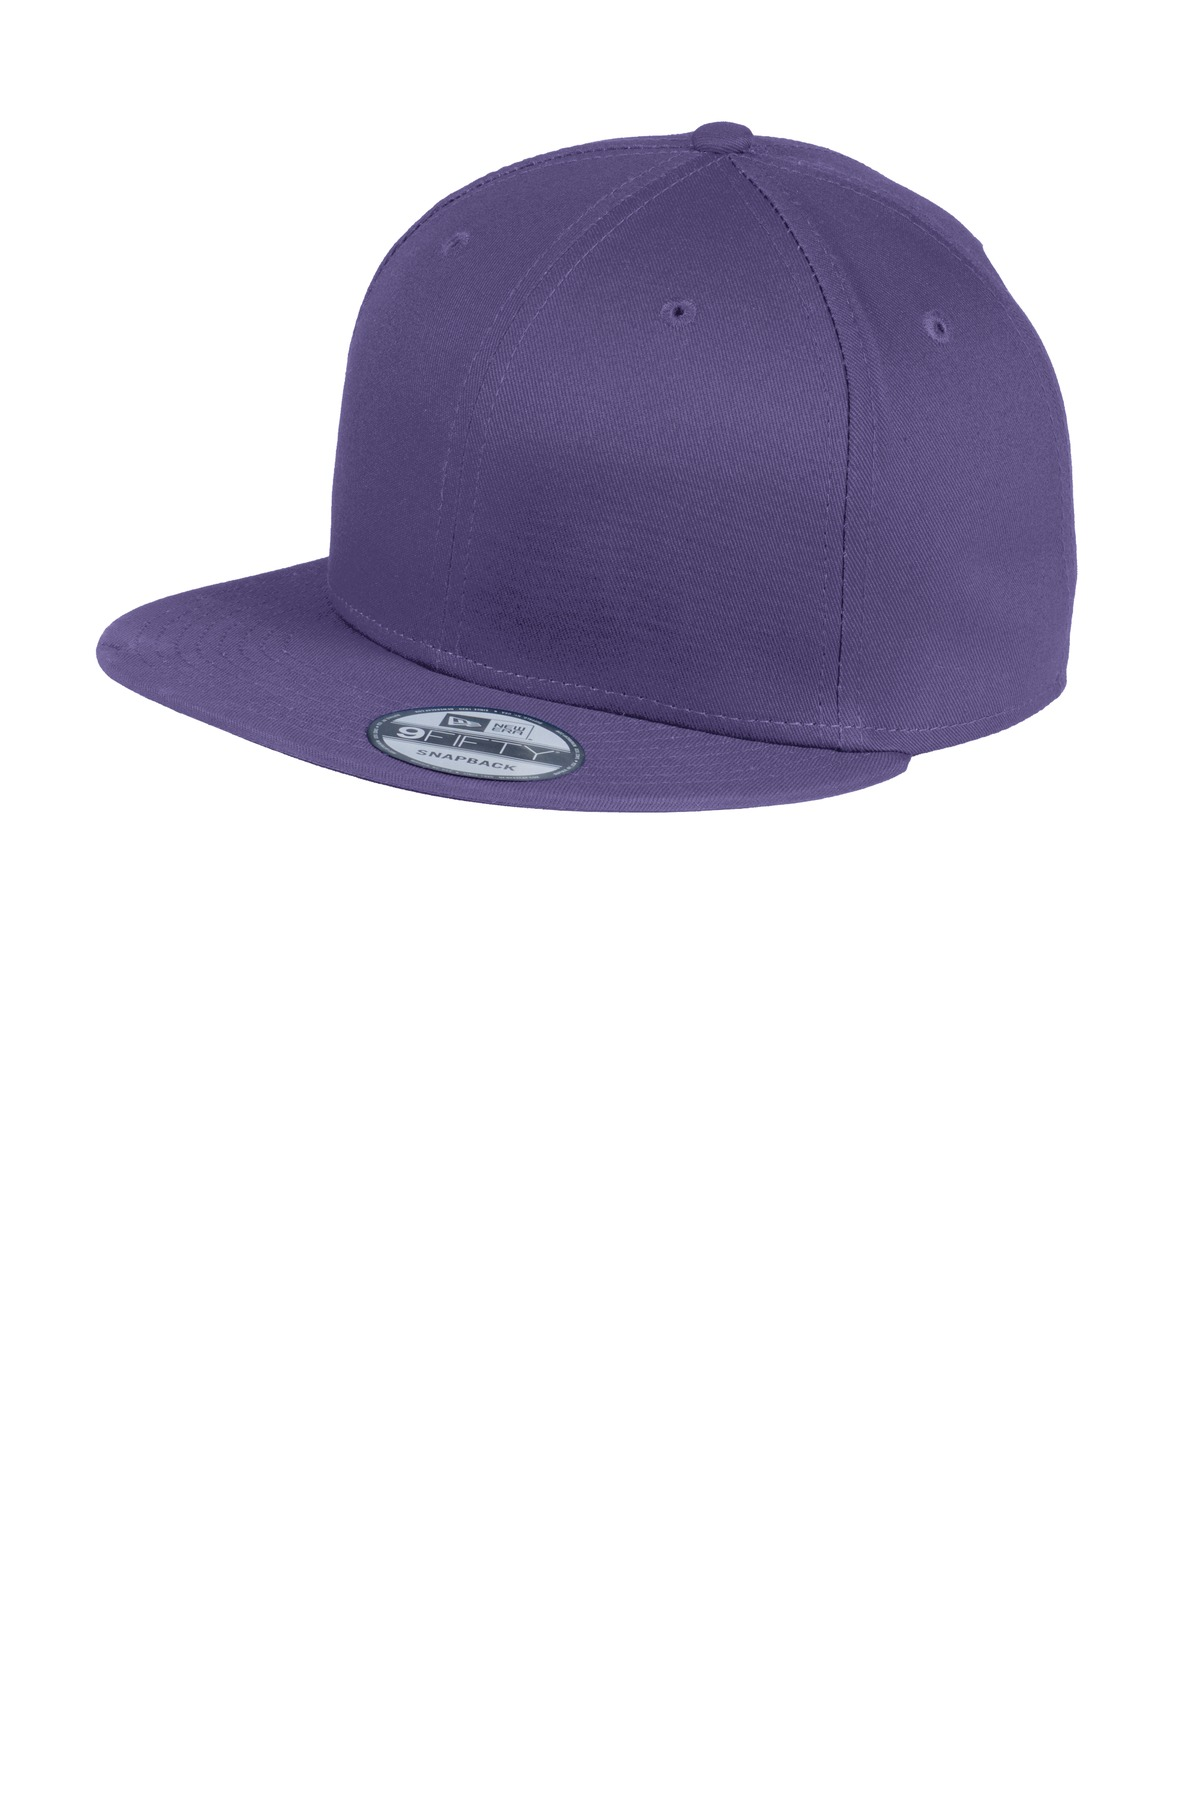 New Era ®  - Flat Bill Snapback Cap. NE400 - Purple